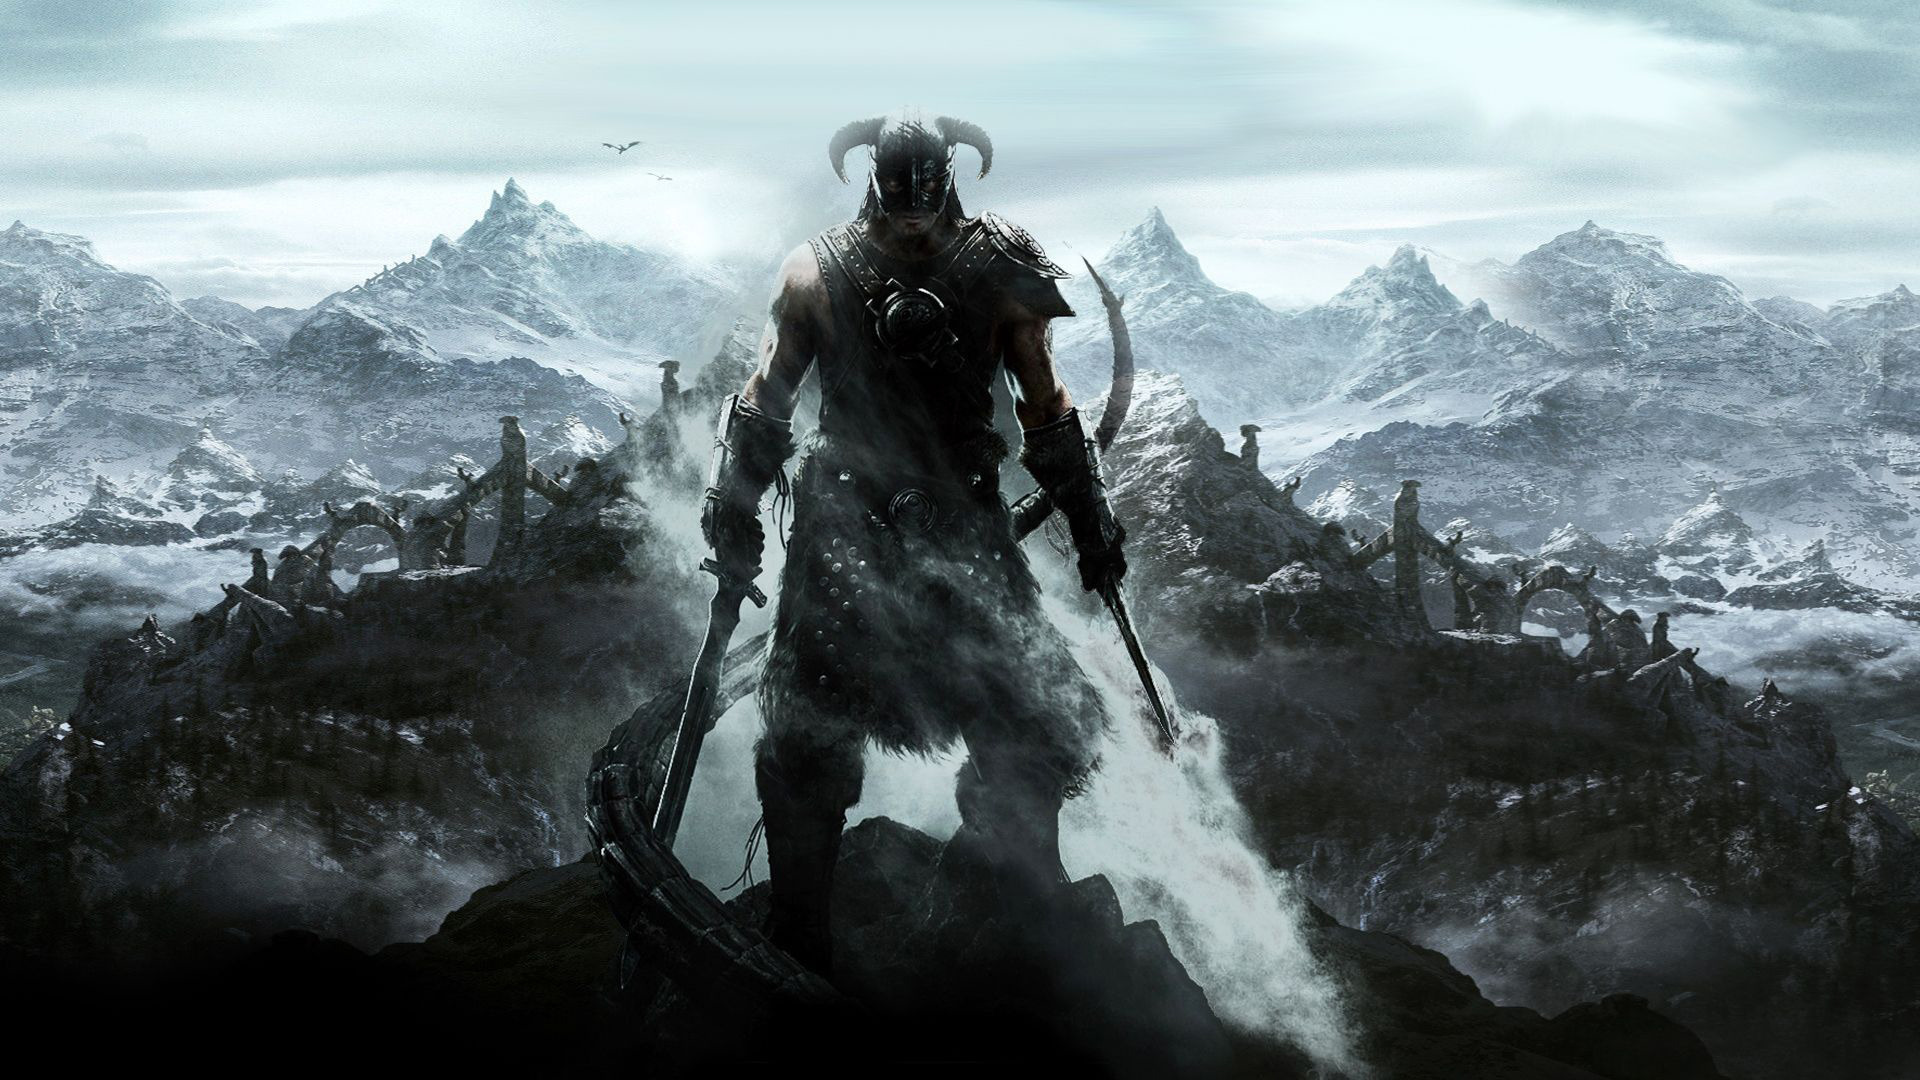 The Elder Scrolls V: Skyrim Wallpapers Images Photos Pictures